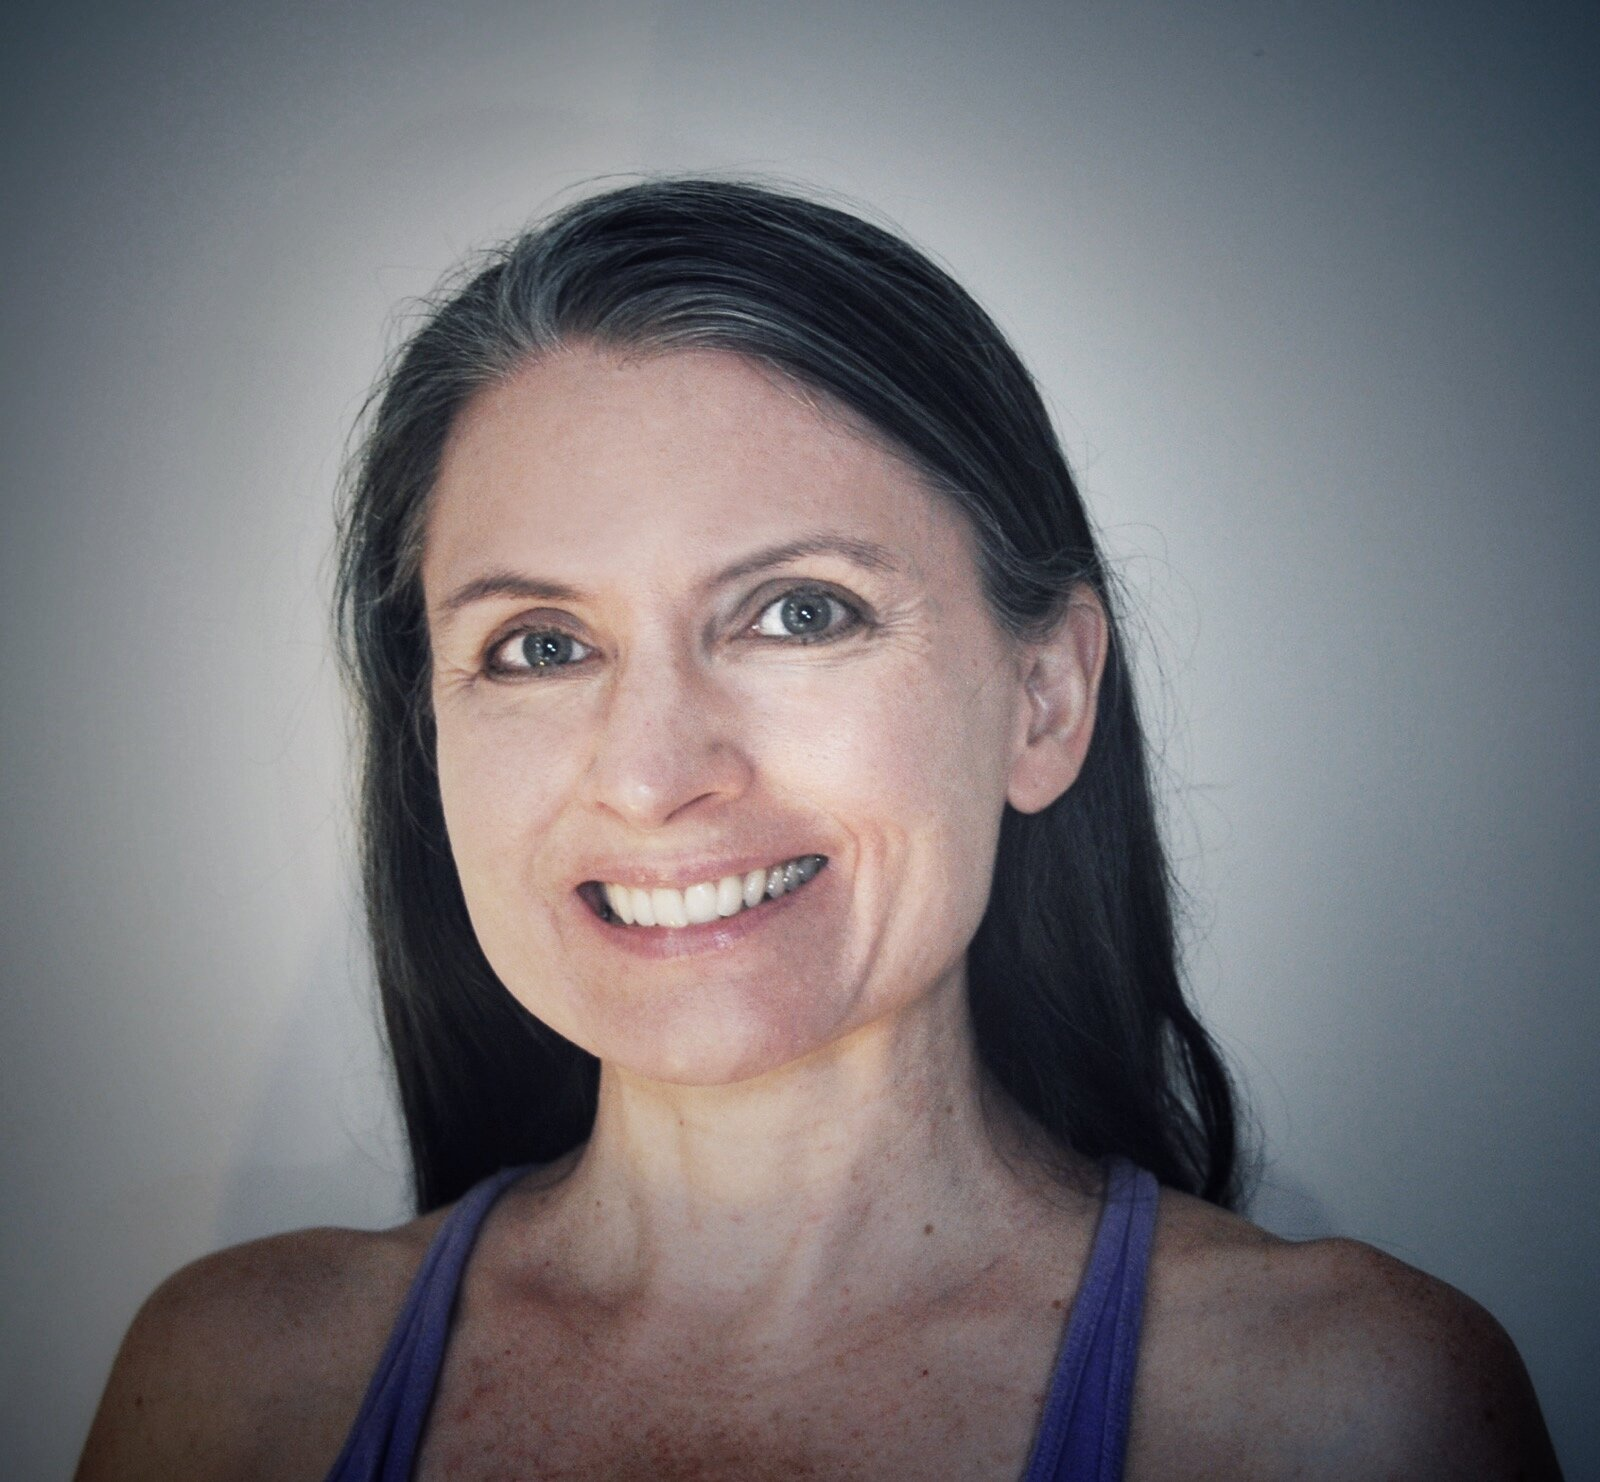 Maria Bassett    Maria Bassett, RYT-200, has studied and practiced yoga and Reiki since the 1990's. After Forrest Yoga found her in 2008, she went on to earn her 200-hr teaching certificate in Forrest Yoga in 2014, studying directly with Ana Forrest. The course of her life changed. Later she completed the 100-hour Yoga Clinic of NYC Teacher Training with Erica Mather. She currently teaches private clients in NYC, corporate classes at Rockefeller University and co-teaches Monday night classes in NYC with Erica and Shayna. Yoga continues to be the place she finds calm. Practice via SoundCloud with Maria  here.